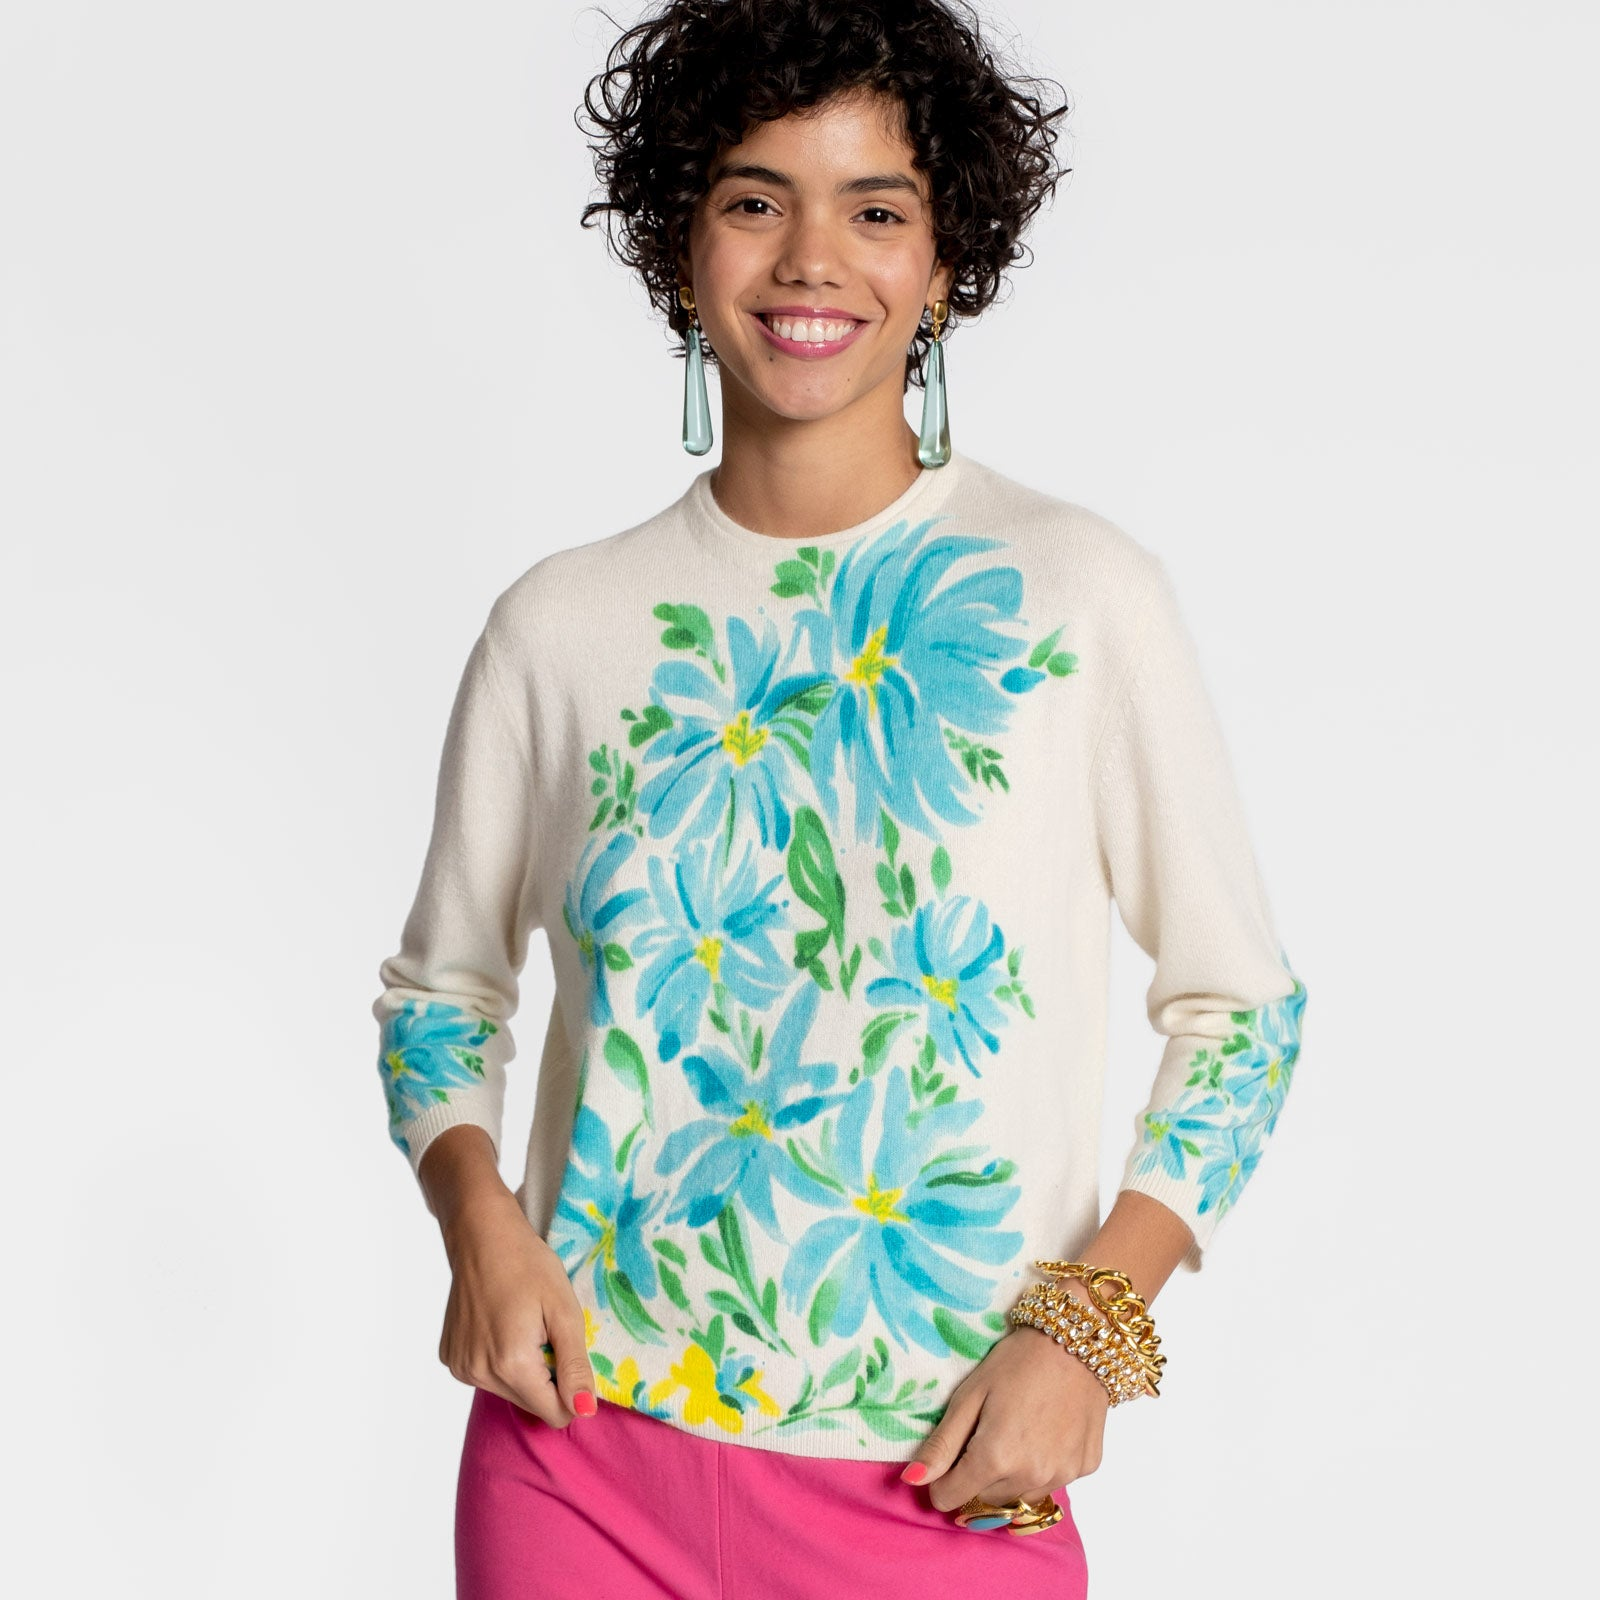 Sweetie Sweater Floral Blue - Frances Valentine